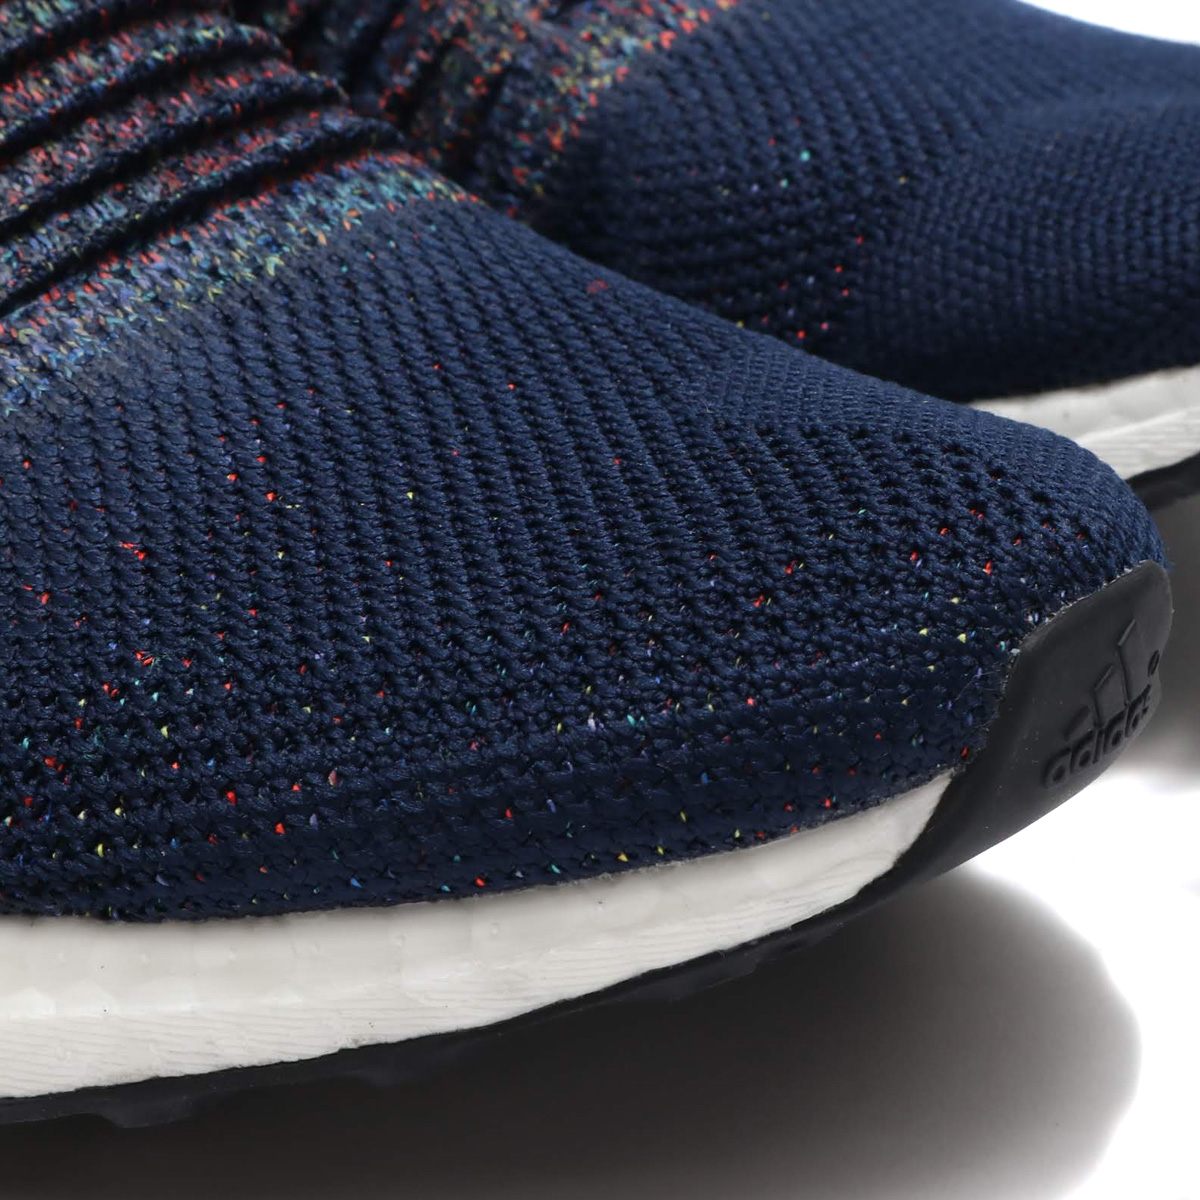 0deecd9287e2f adidas UltraBOOST LACELESS (Adidas ultra boost race reply) COLLEGE NAVY RUNNING  WHITE CORE BLACK 18FW-I